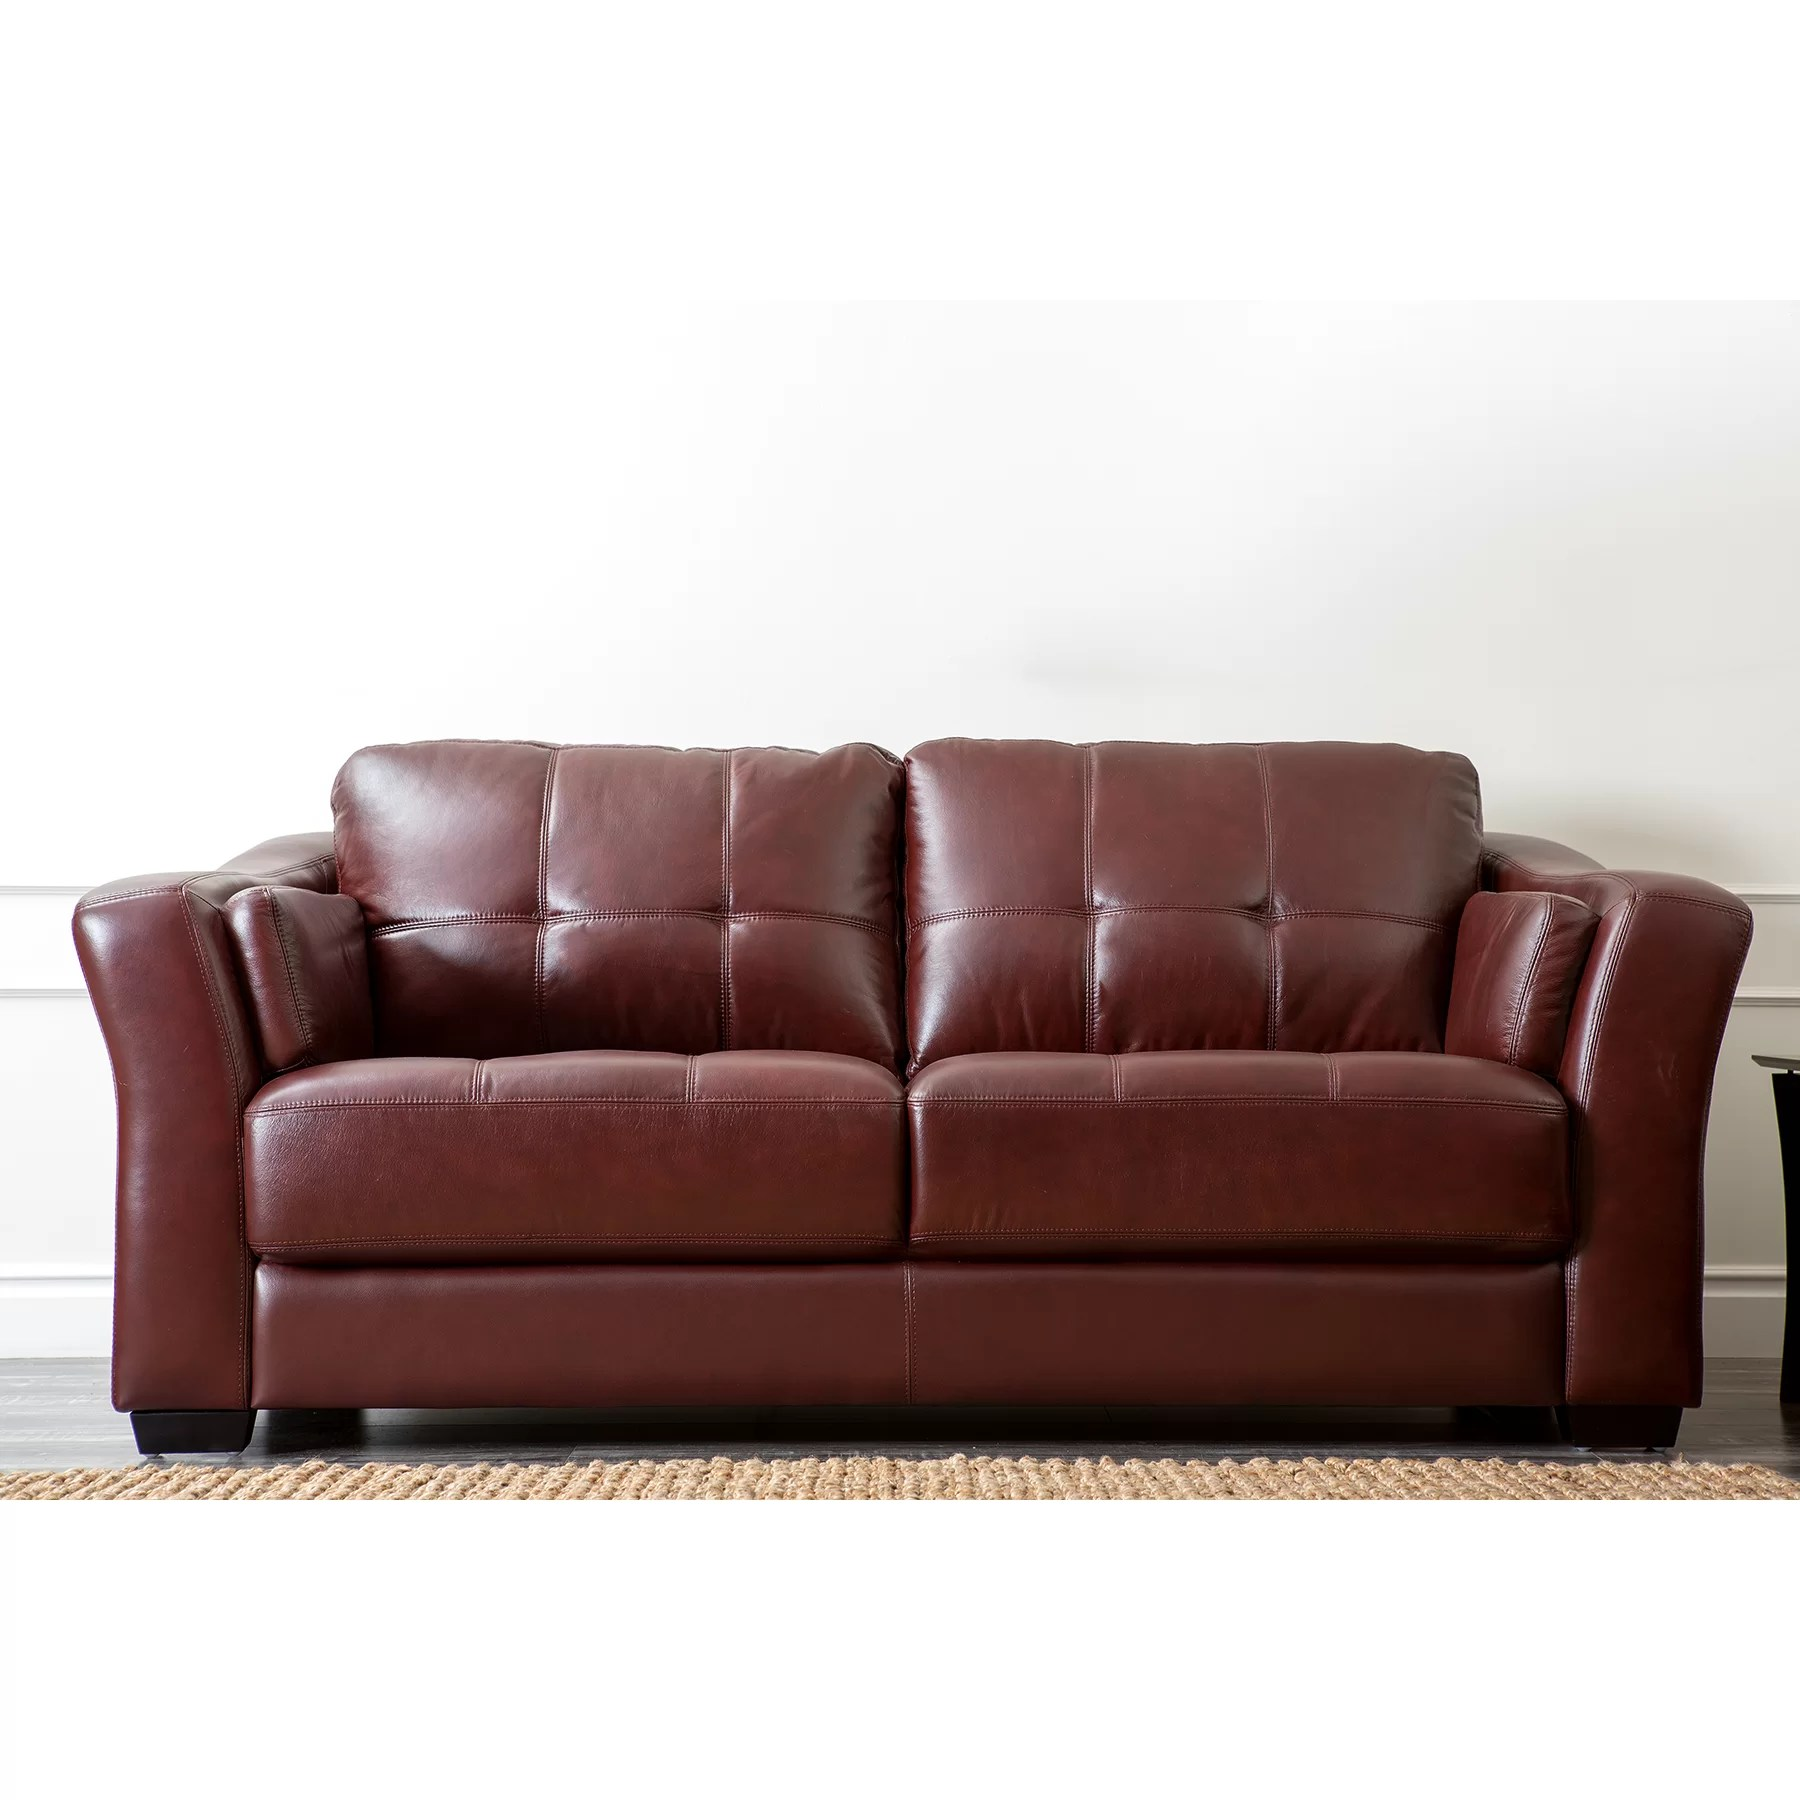 Abbyson Leather Sofa Reviews Image Models